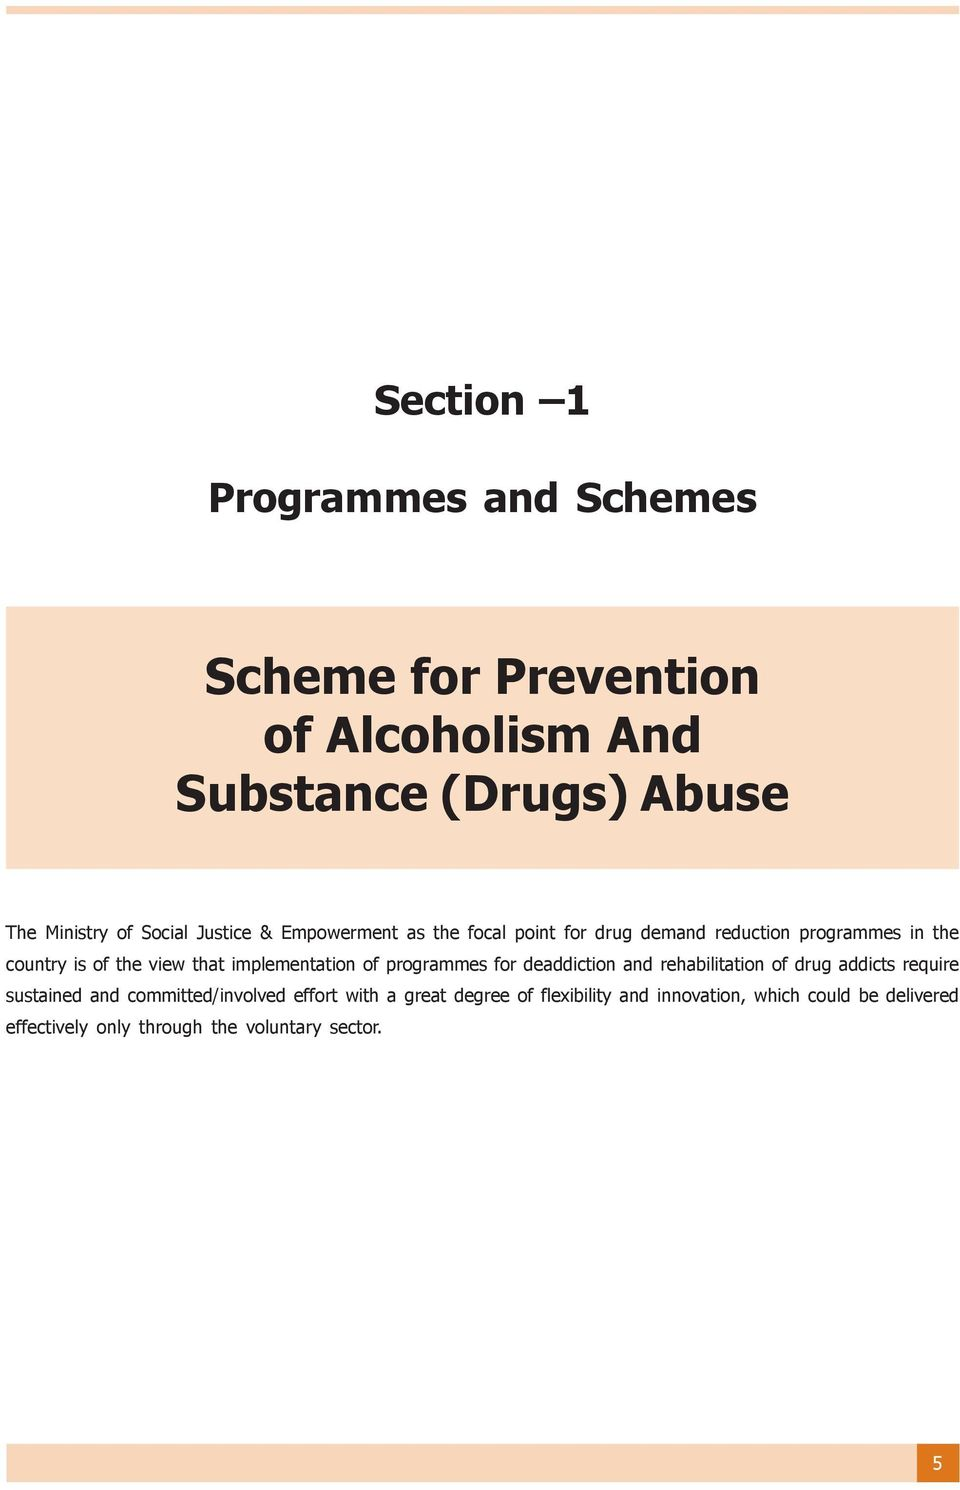 implementation of programmes for deaddiction and rehabilitation of drug addicts require sustained and committed/involved